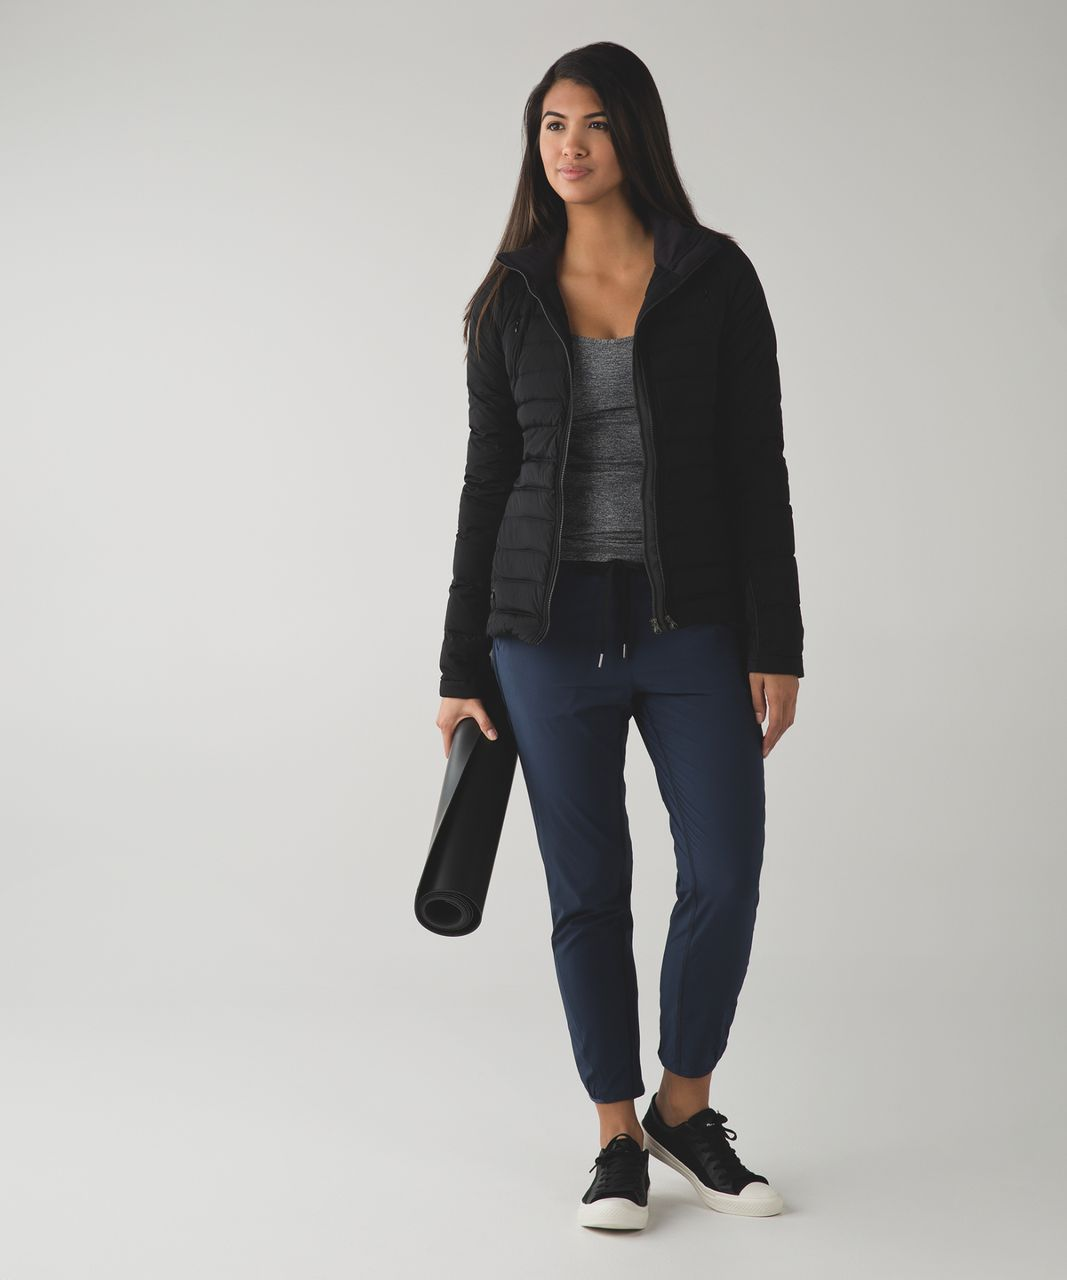 Lululemon &go On The Go Jogger *Lined - Inkwell